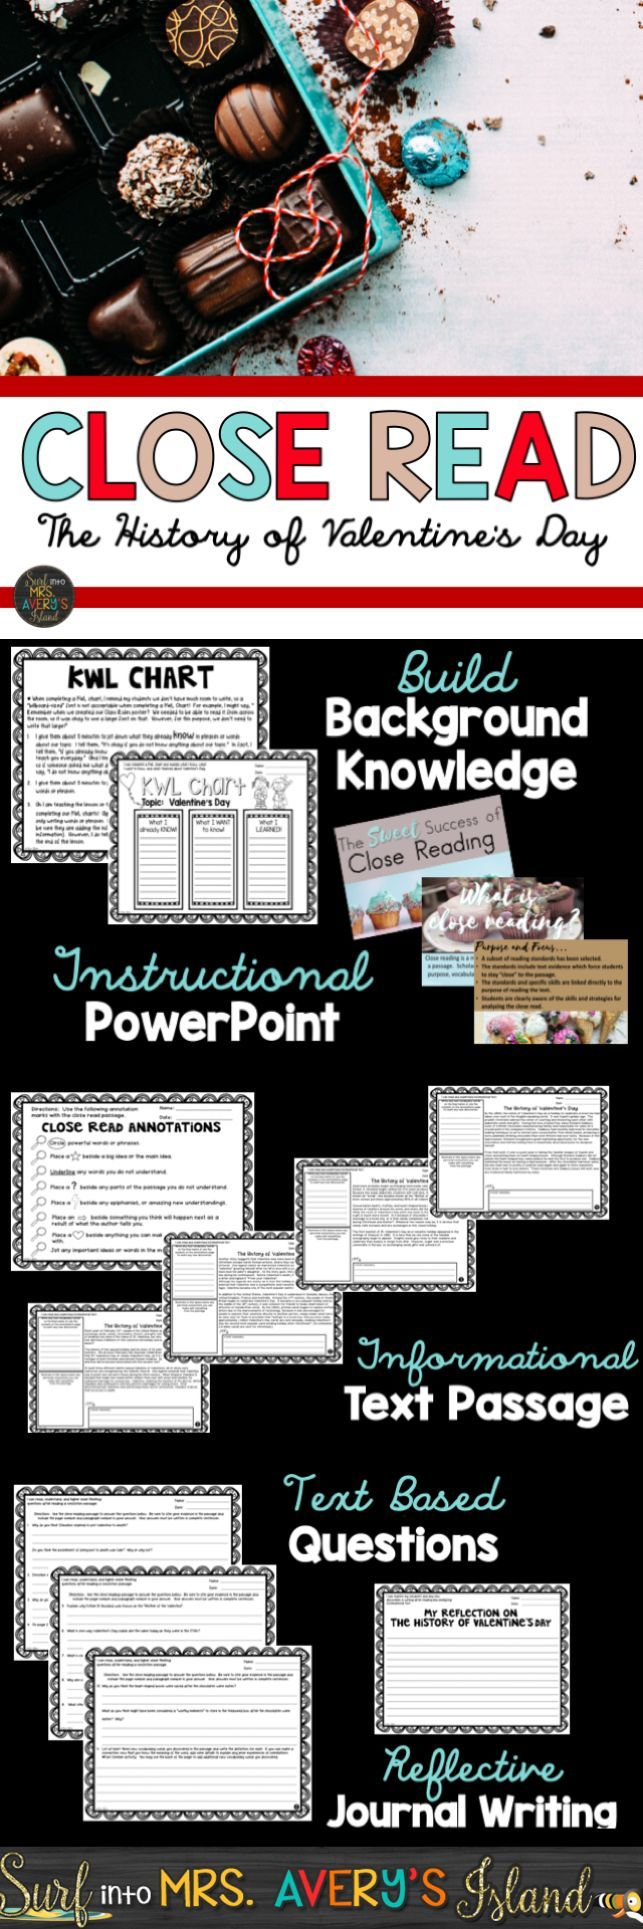 This close reading packet is full of printables and an instructional PowerPoint to provide your students opportunities to increase their vocabulary, reading fluency, and comprehension skills when reading a nonfiction passage.    Click here to take a look at this engaging close reading resource on The History of Valentine's Day.